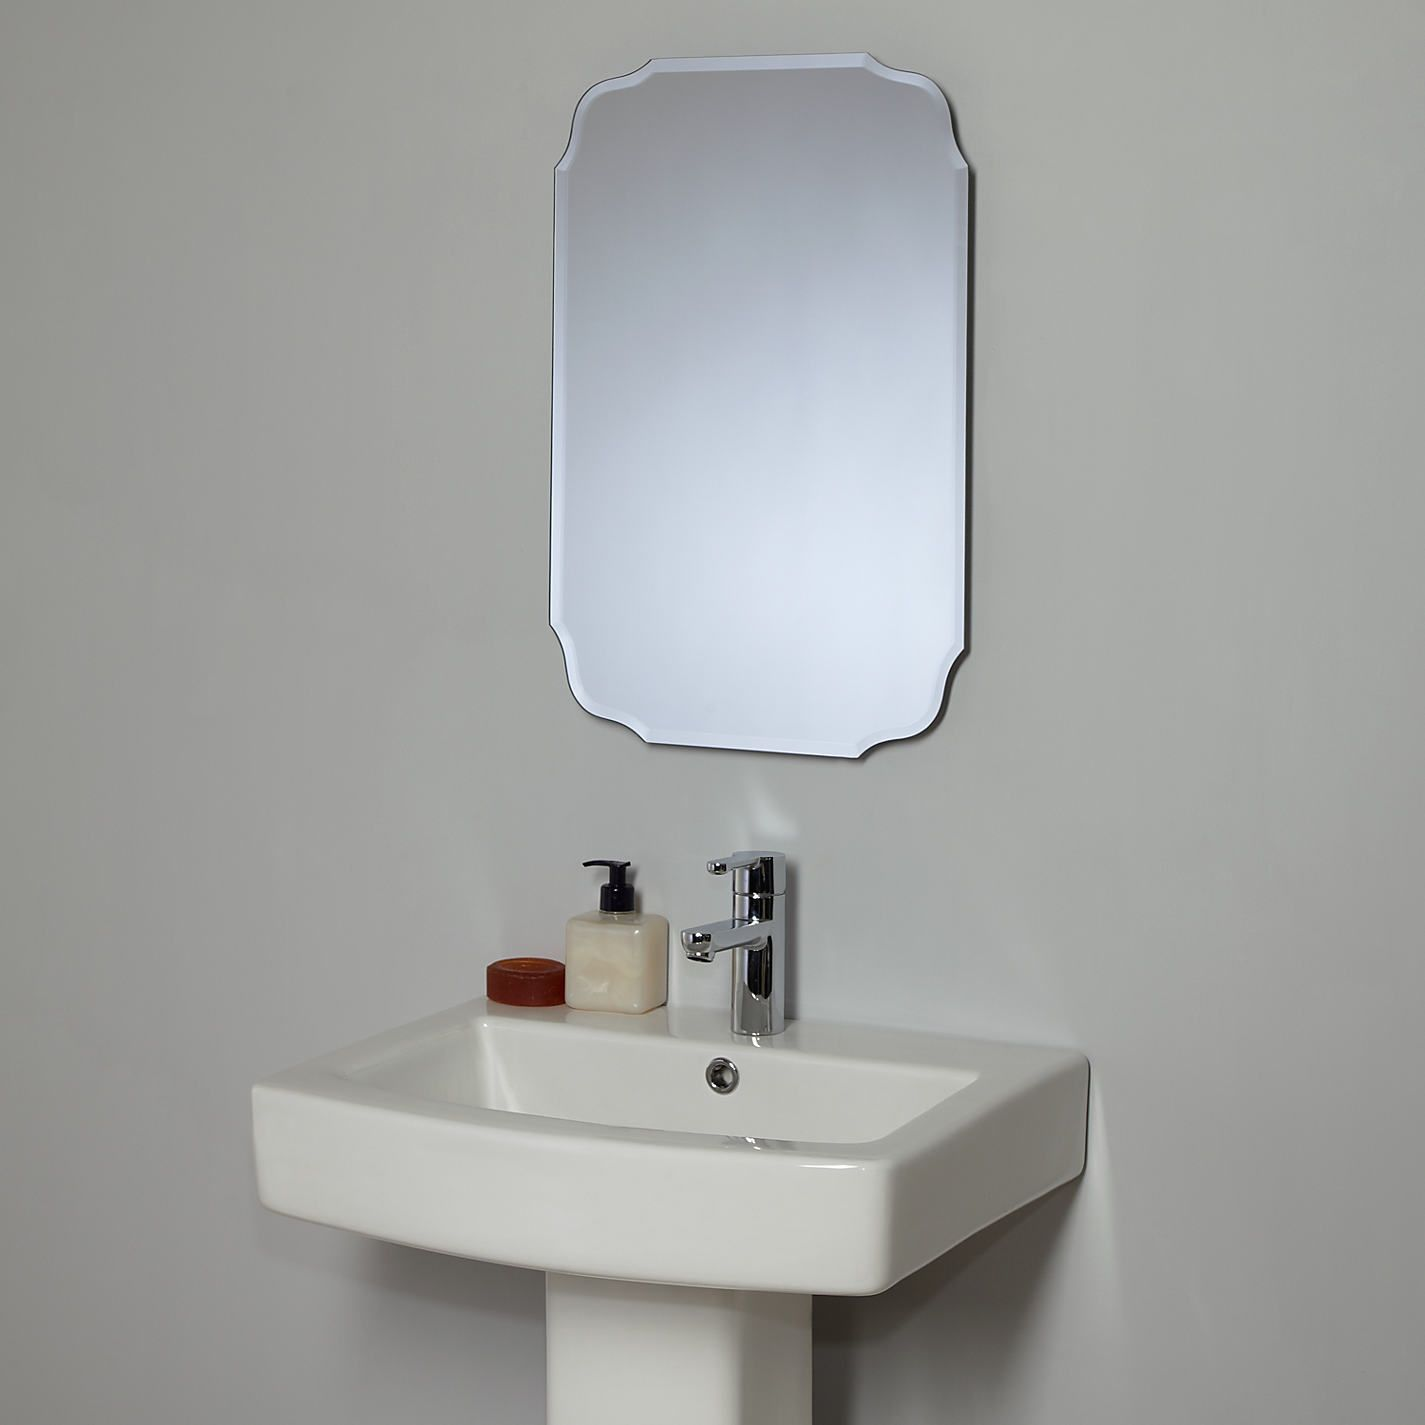 Bathroom Decorative Bathroom Mirror With Each Section End